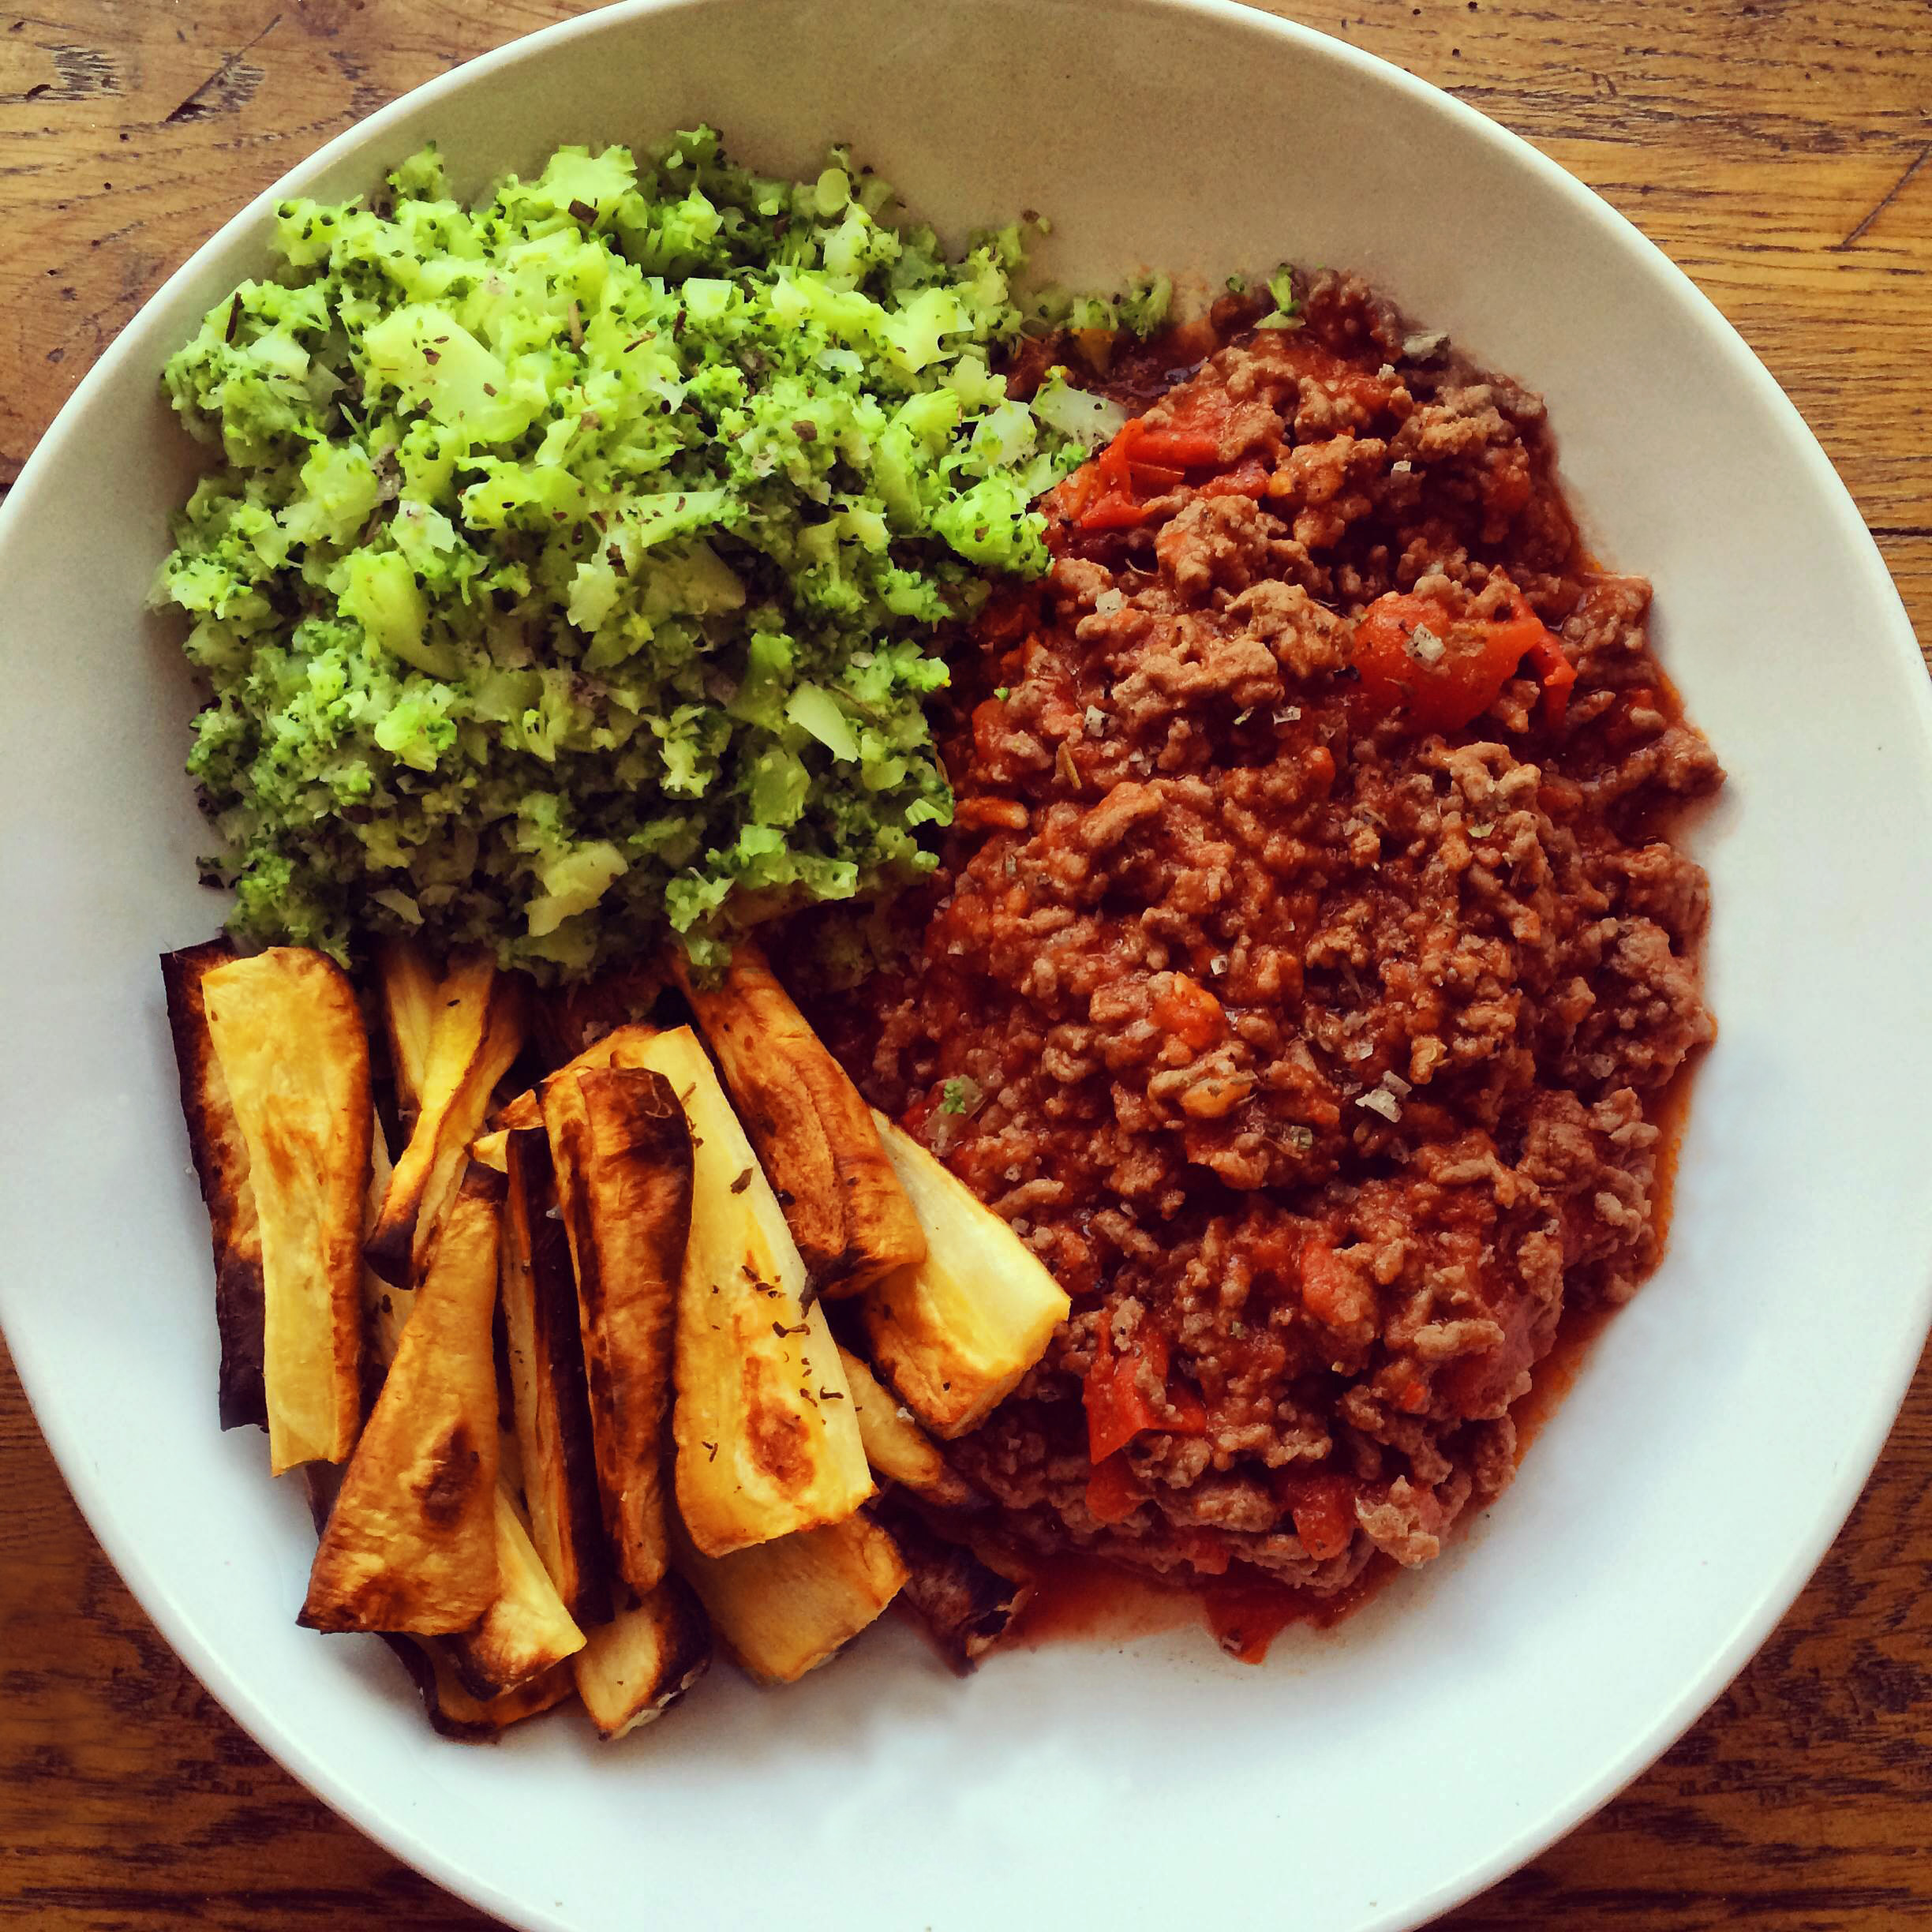 Beef mince, clean eating alice, by healthista.com